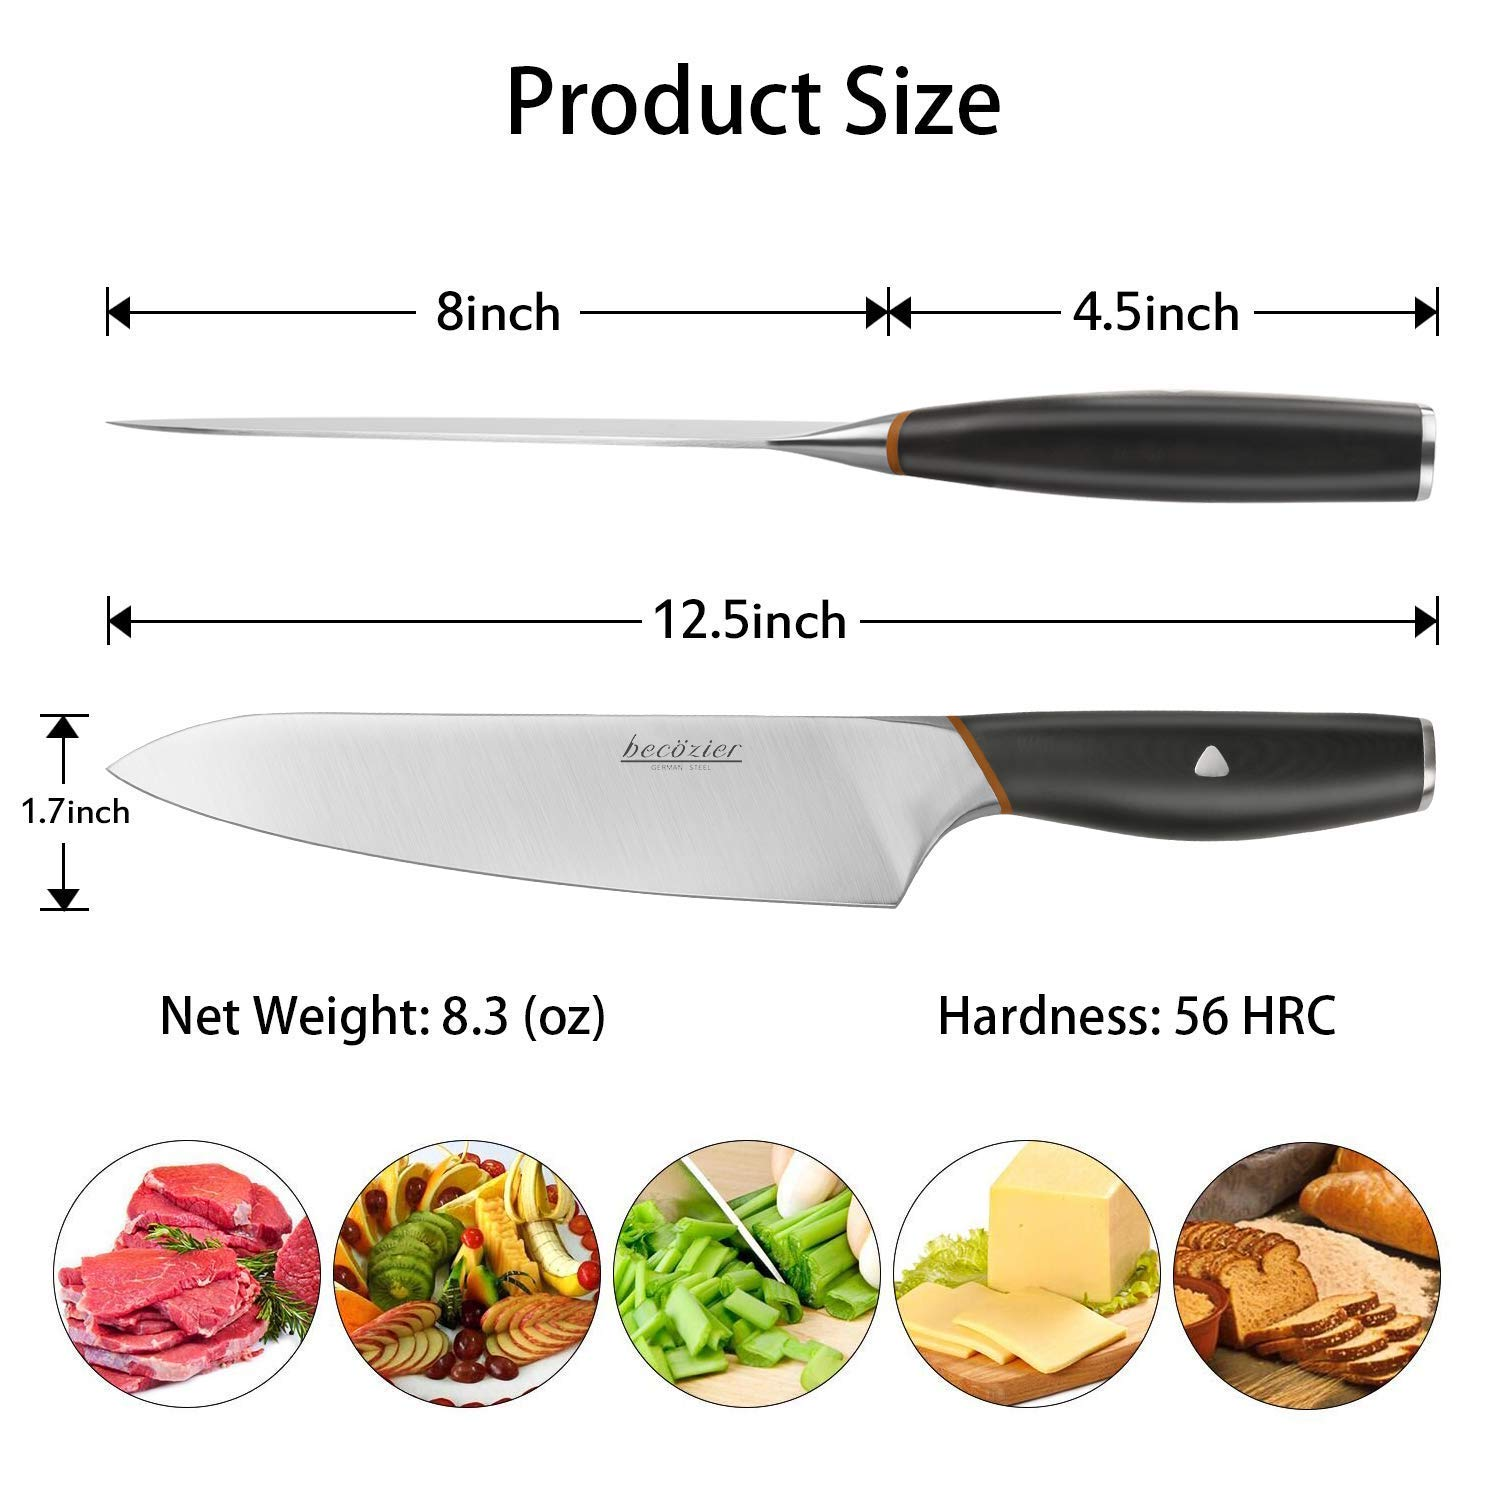 Becozier chef knife,8 inch professional kitchen knife,German High Carbon steel stainless steel with G10 handle sharp Edge,Ergonomic Grip by Becozier (Image #3)